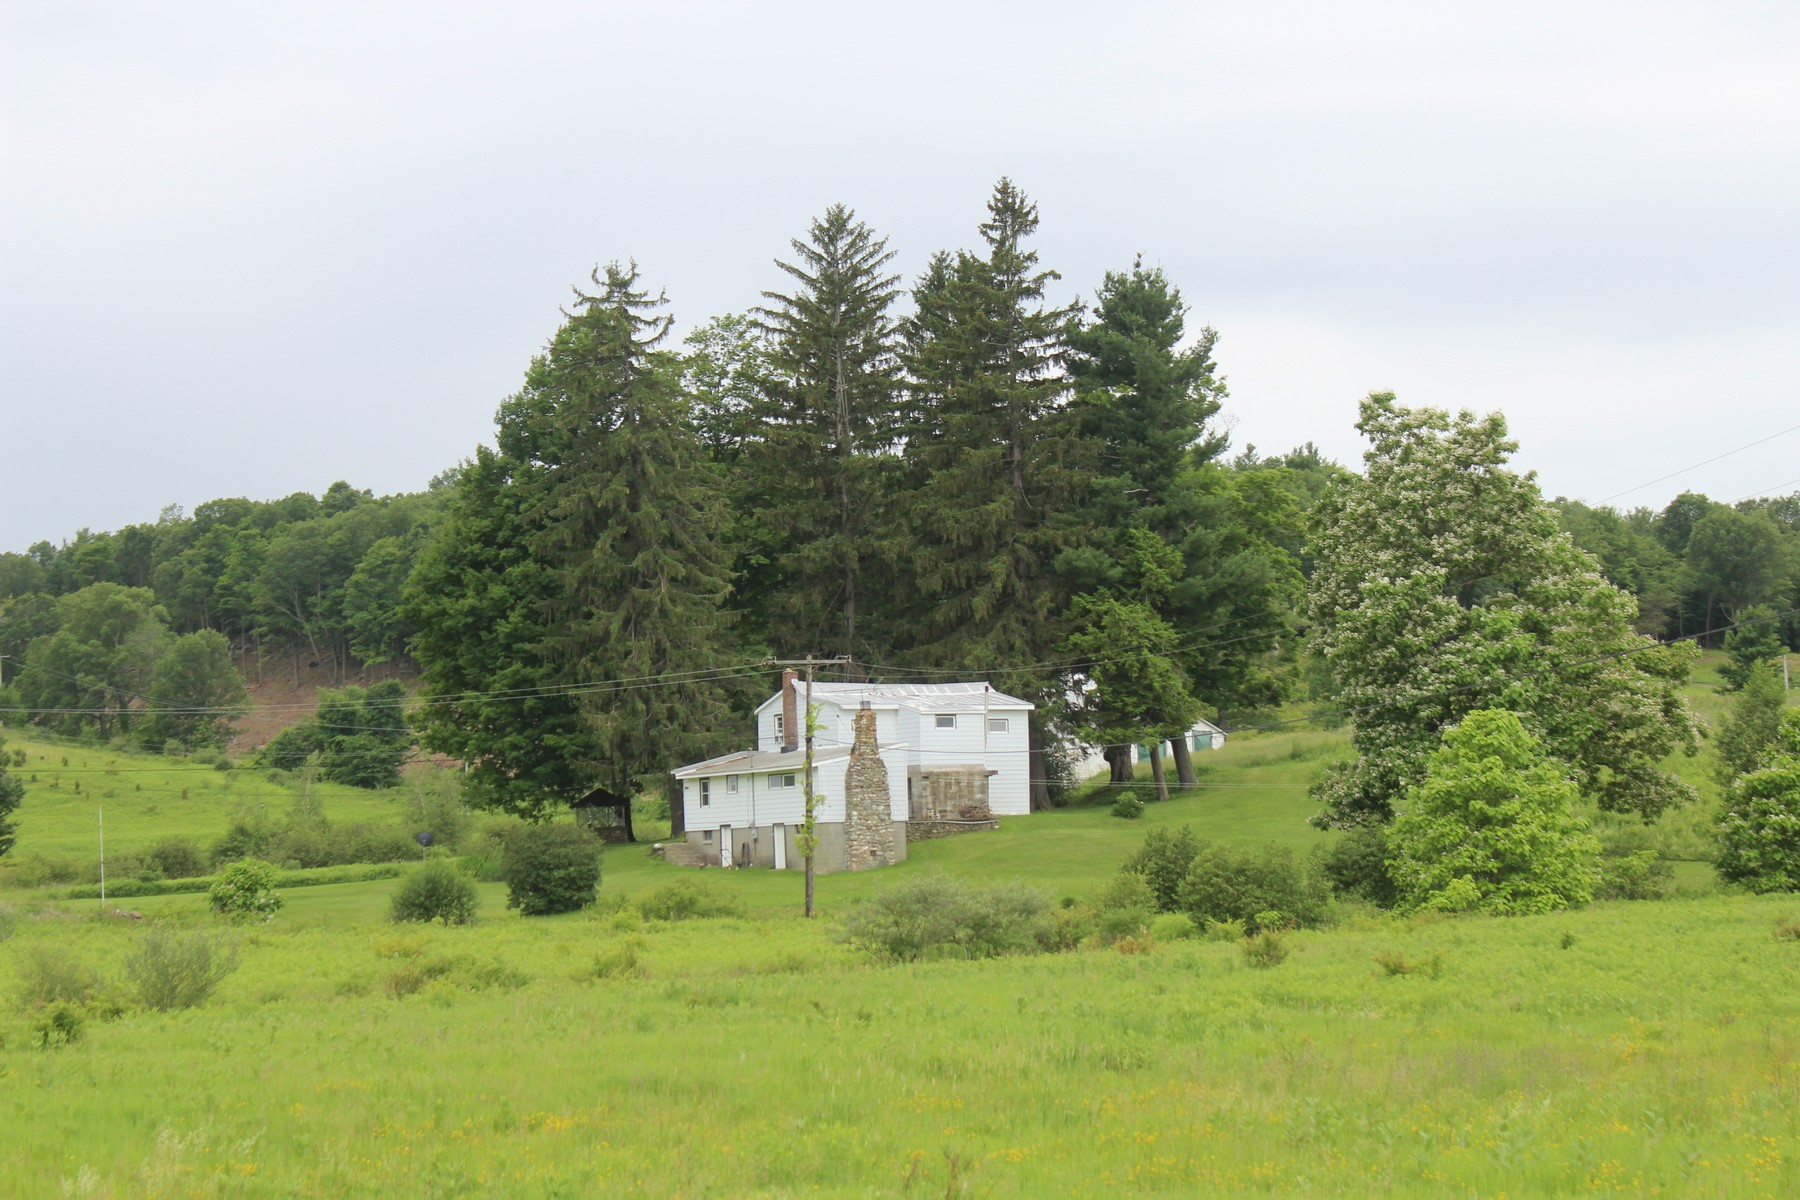 Additional photo for property listing at 229 Kozlowski Road, Gallatin, NY 12523 229  Kozlowski Road Gallatin, Nueva York 12523 Estados Unidos